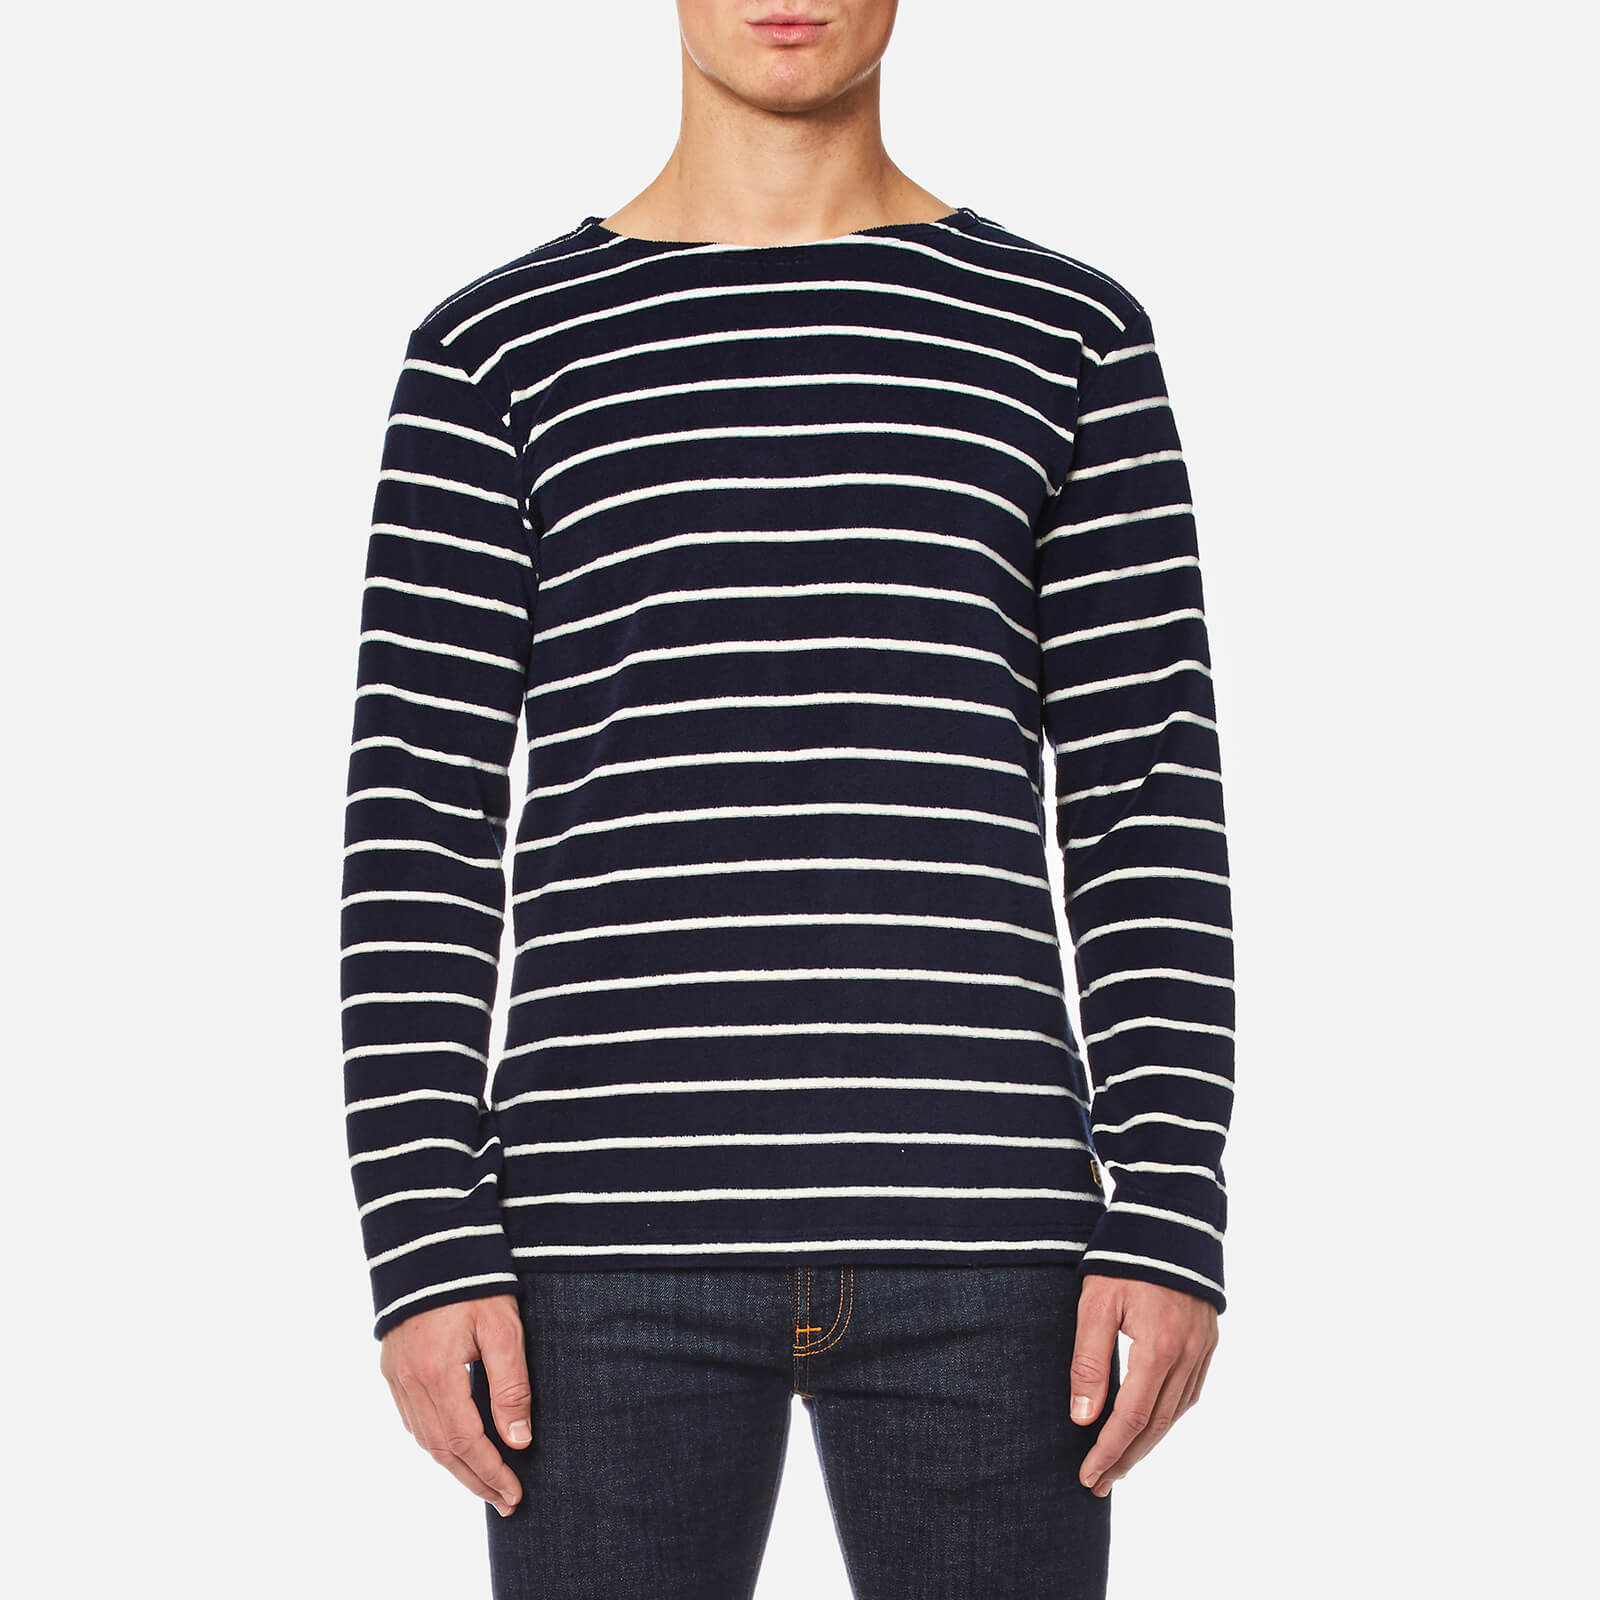 a43effbf7766e4 Armor Lux Men's Towelling Long Sleeve Stripe Top - Seal Nature - Free UK  Delivery over £50